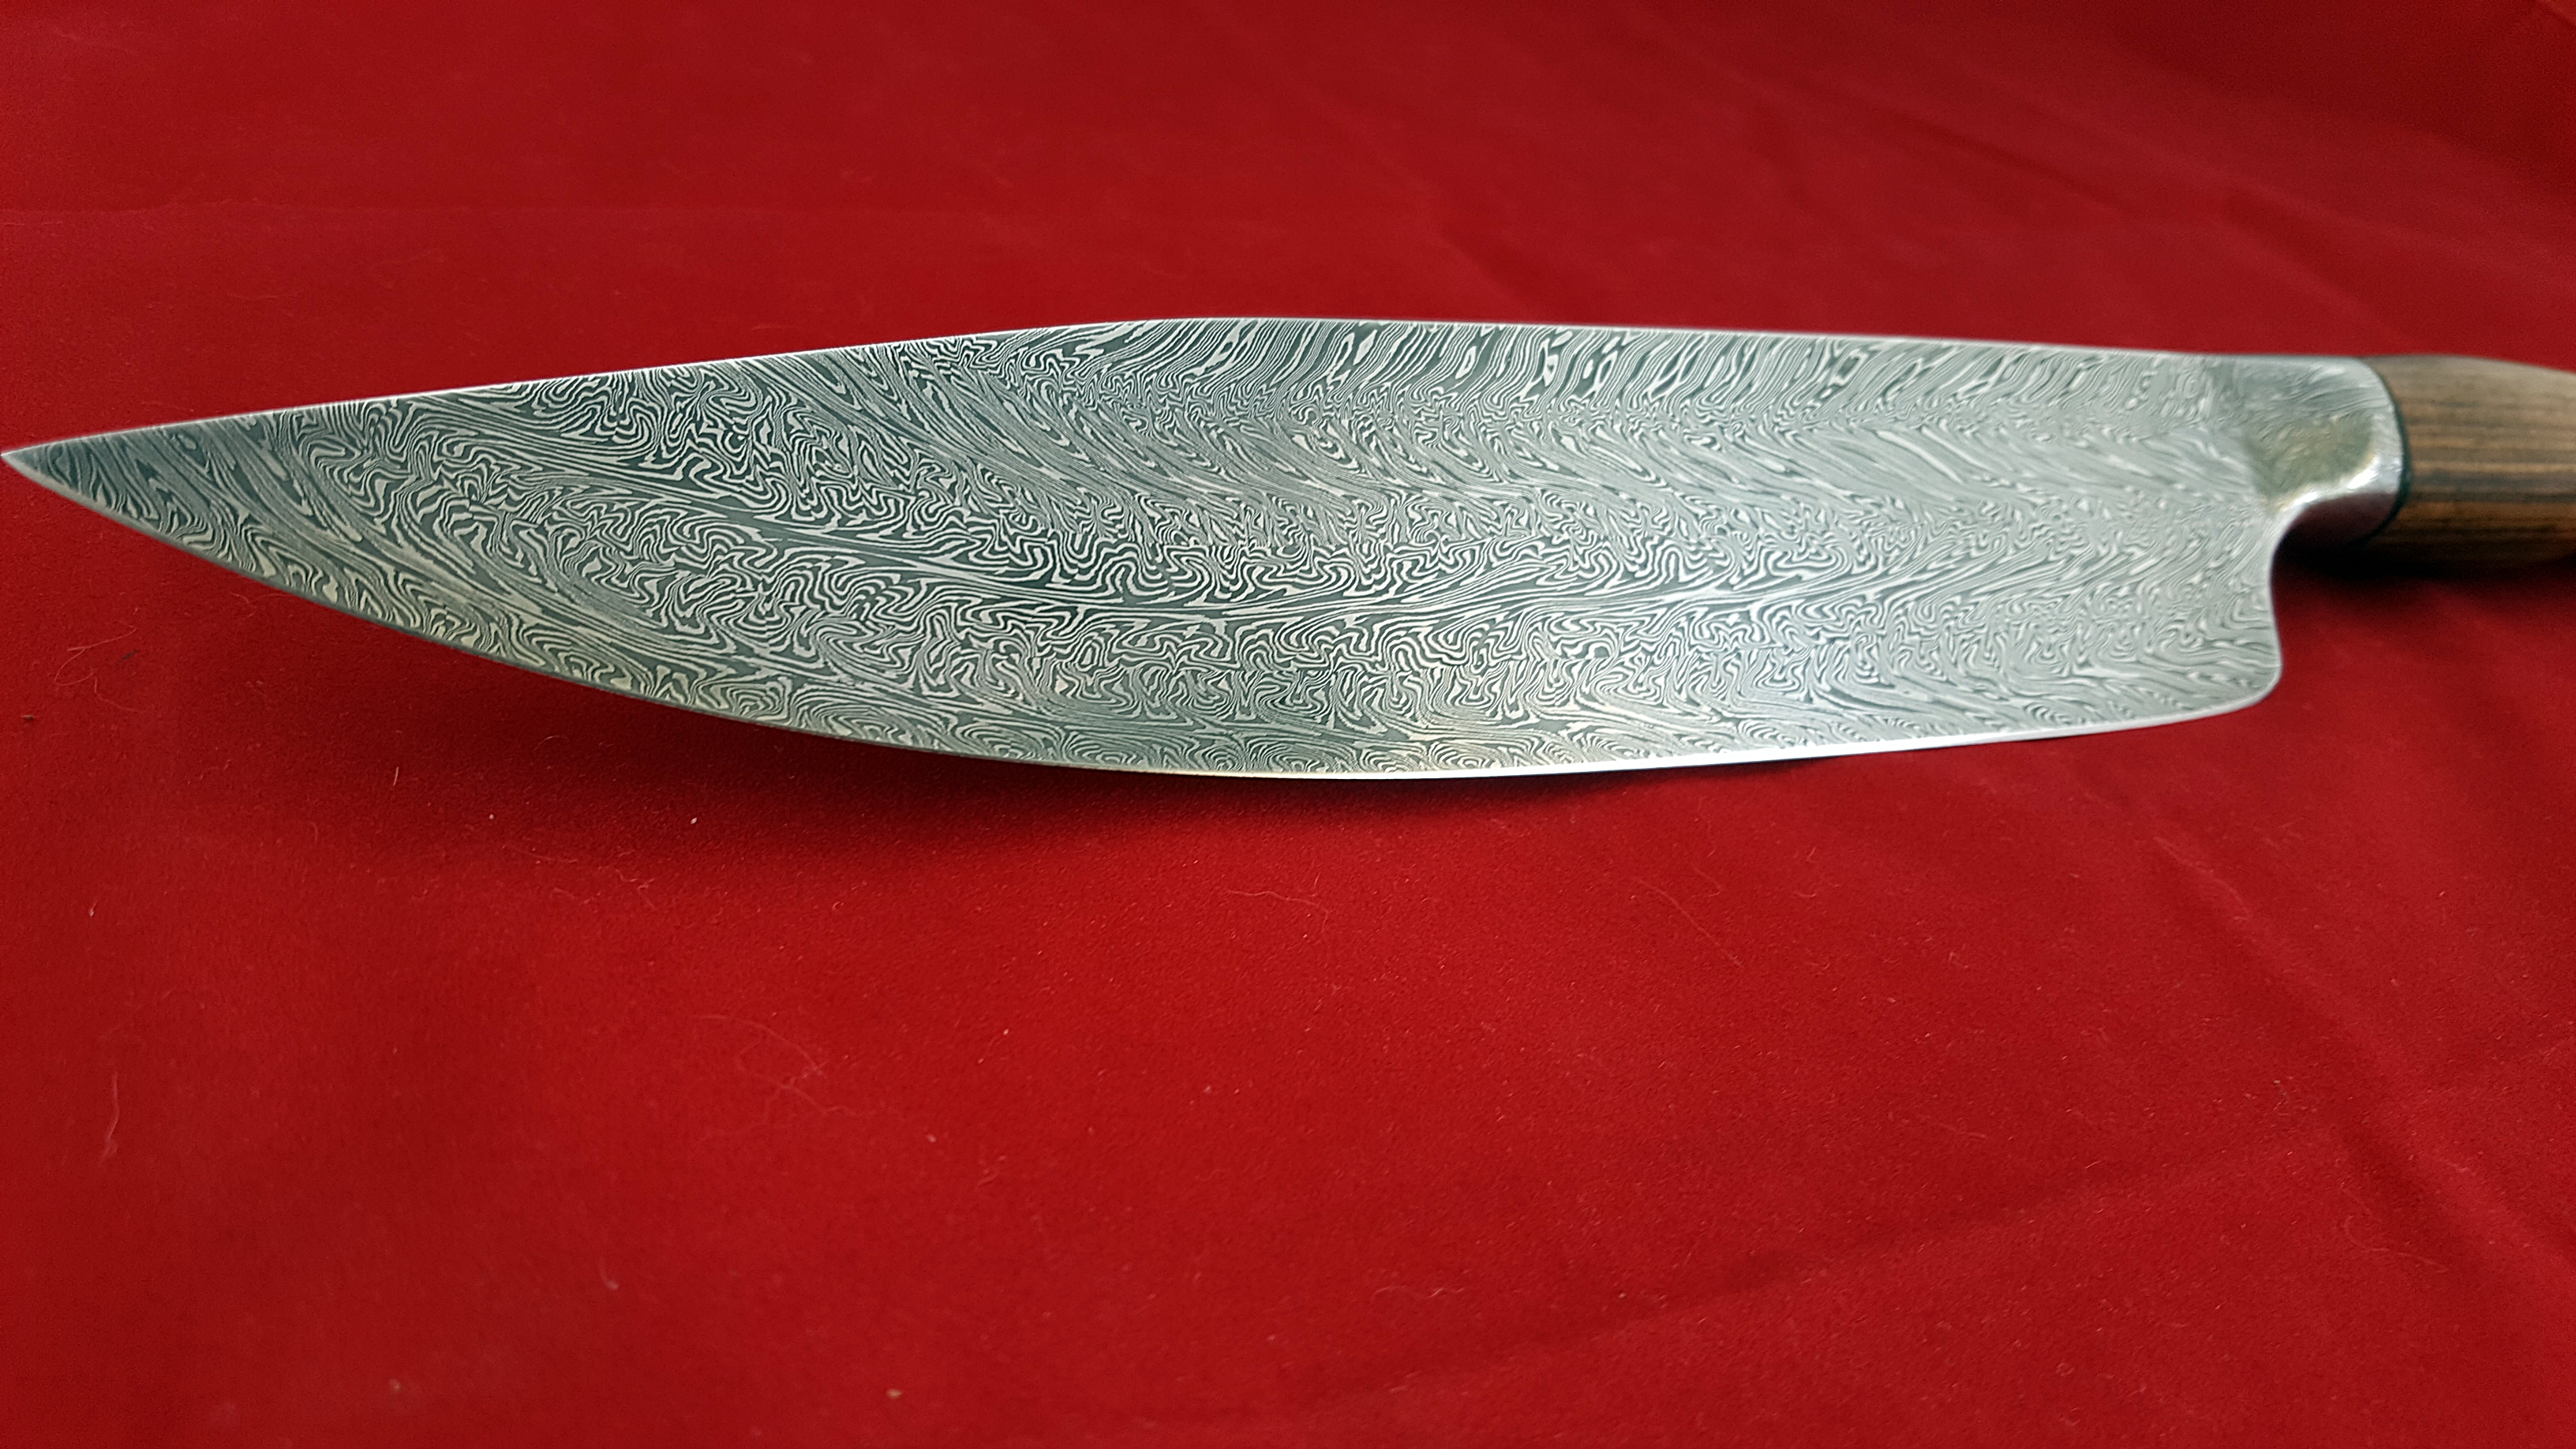 Chef's Knife blade